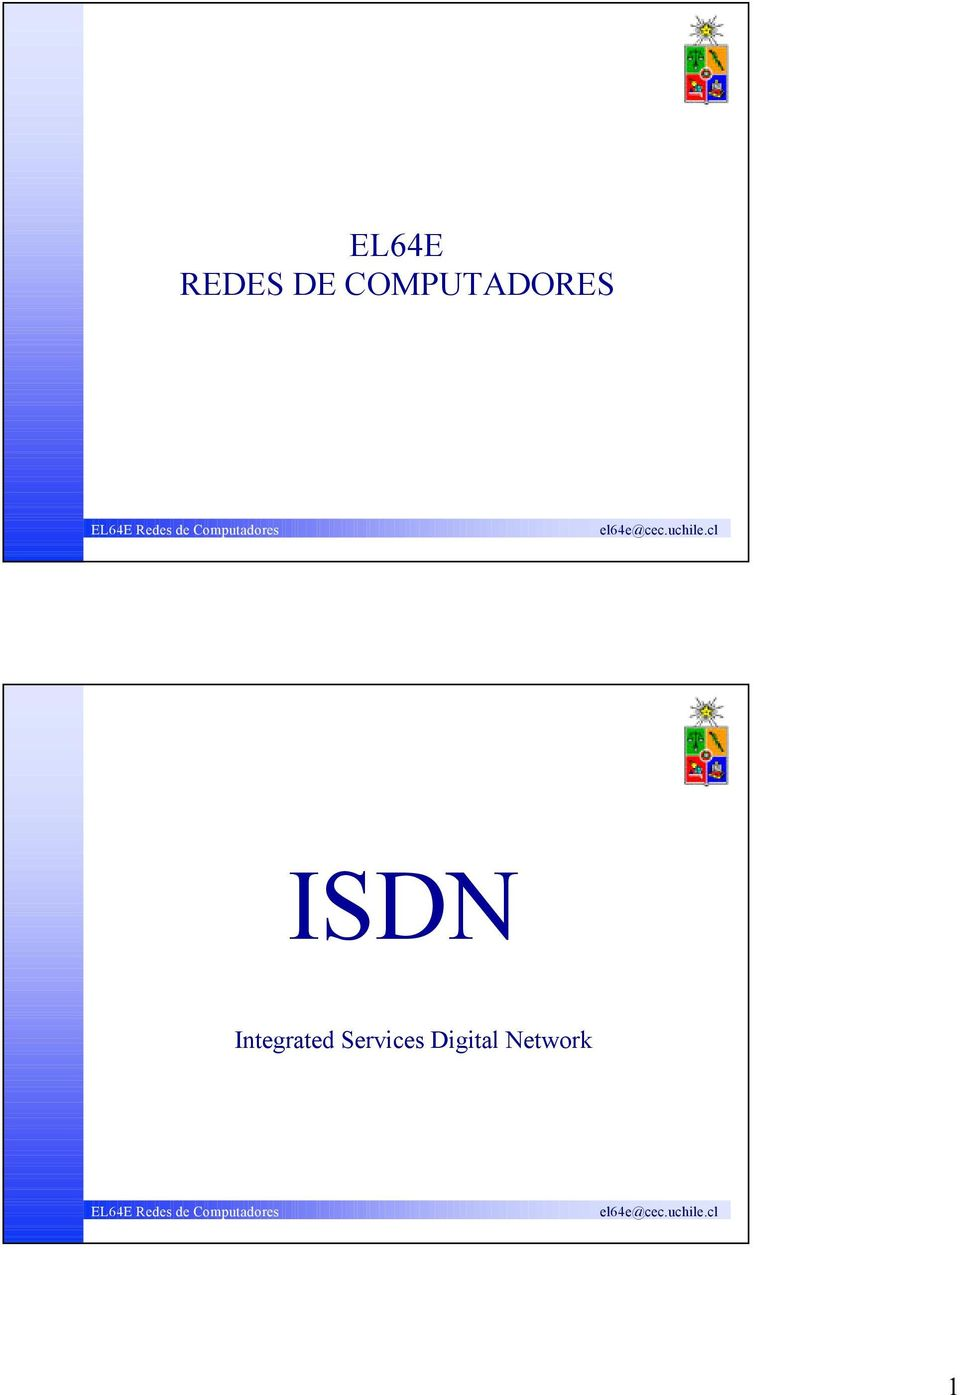 ISDN Integrated